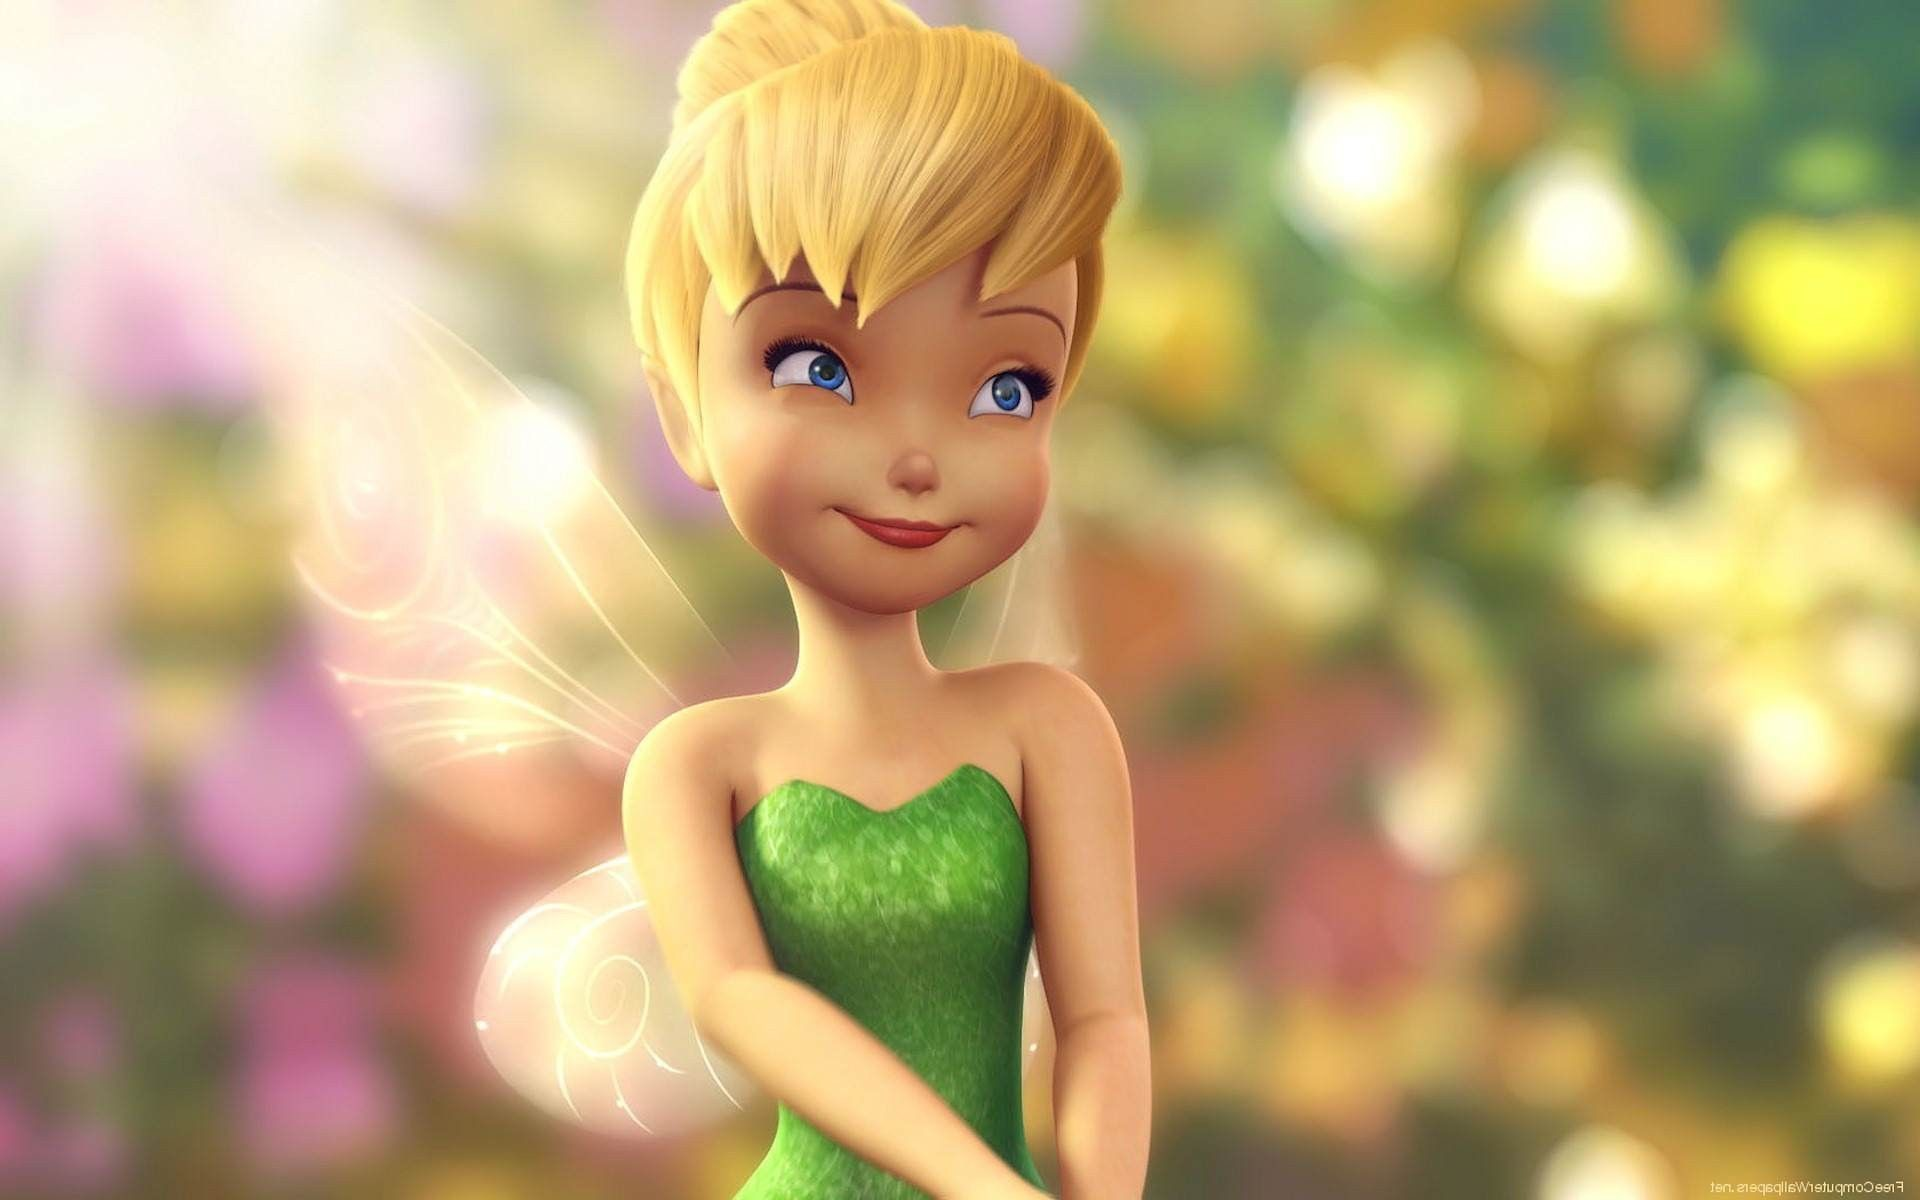 Explore Tinkerbell Wallpaper, Tinker Bell, and more!